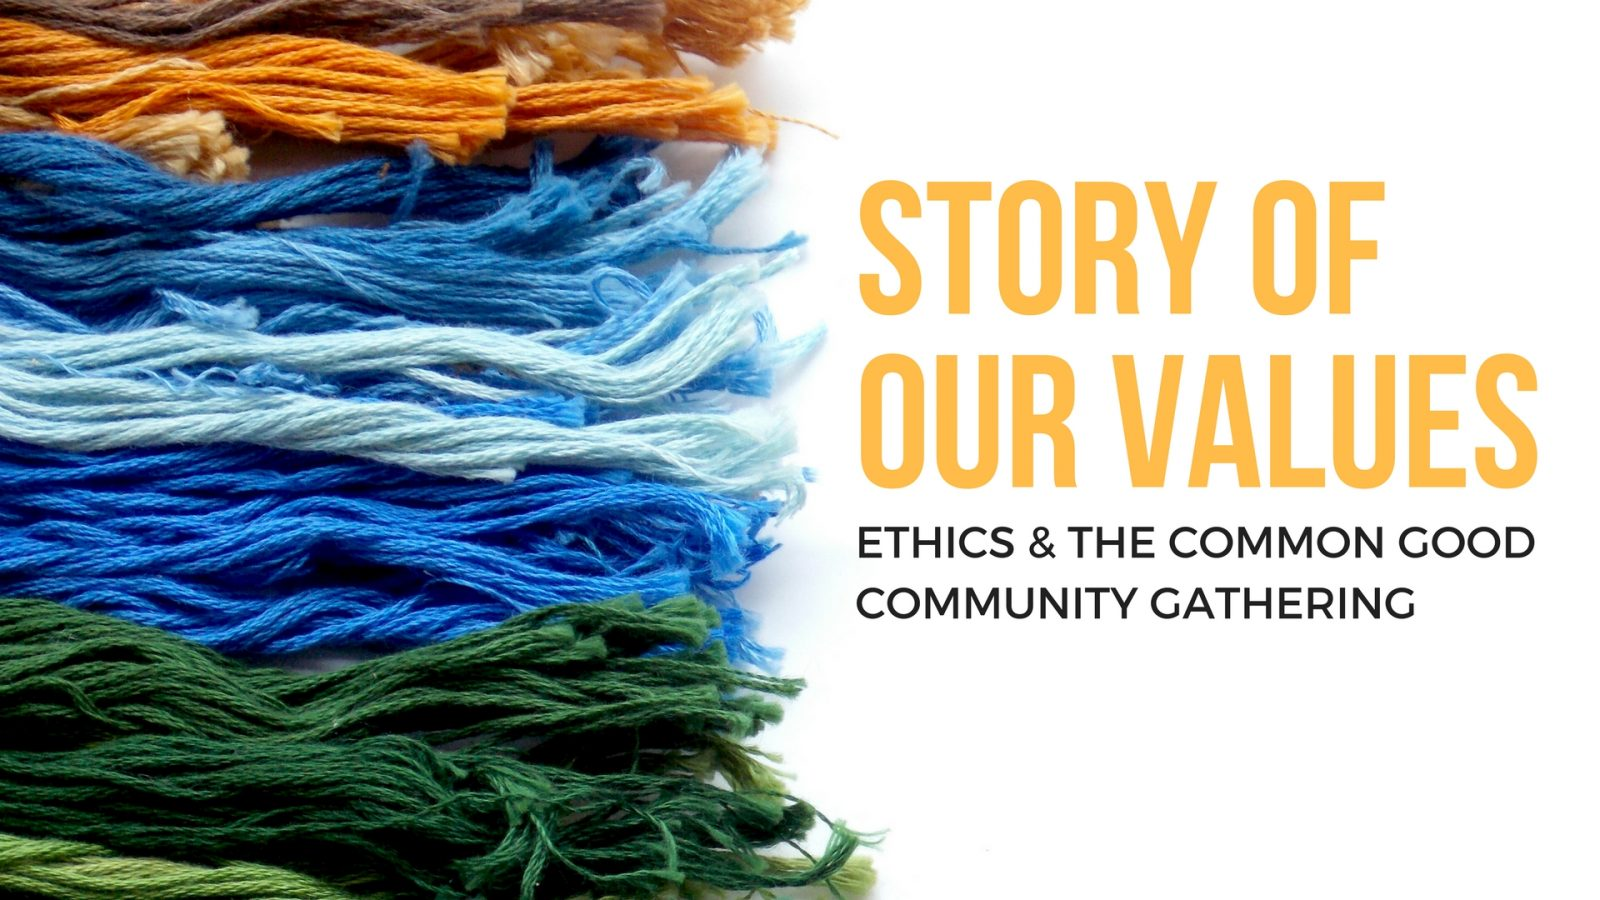 Yellow, blue, and green threads with text Story of our Values, ECG Community Gathering